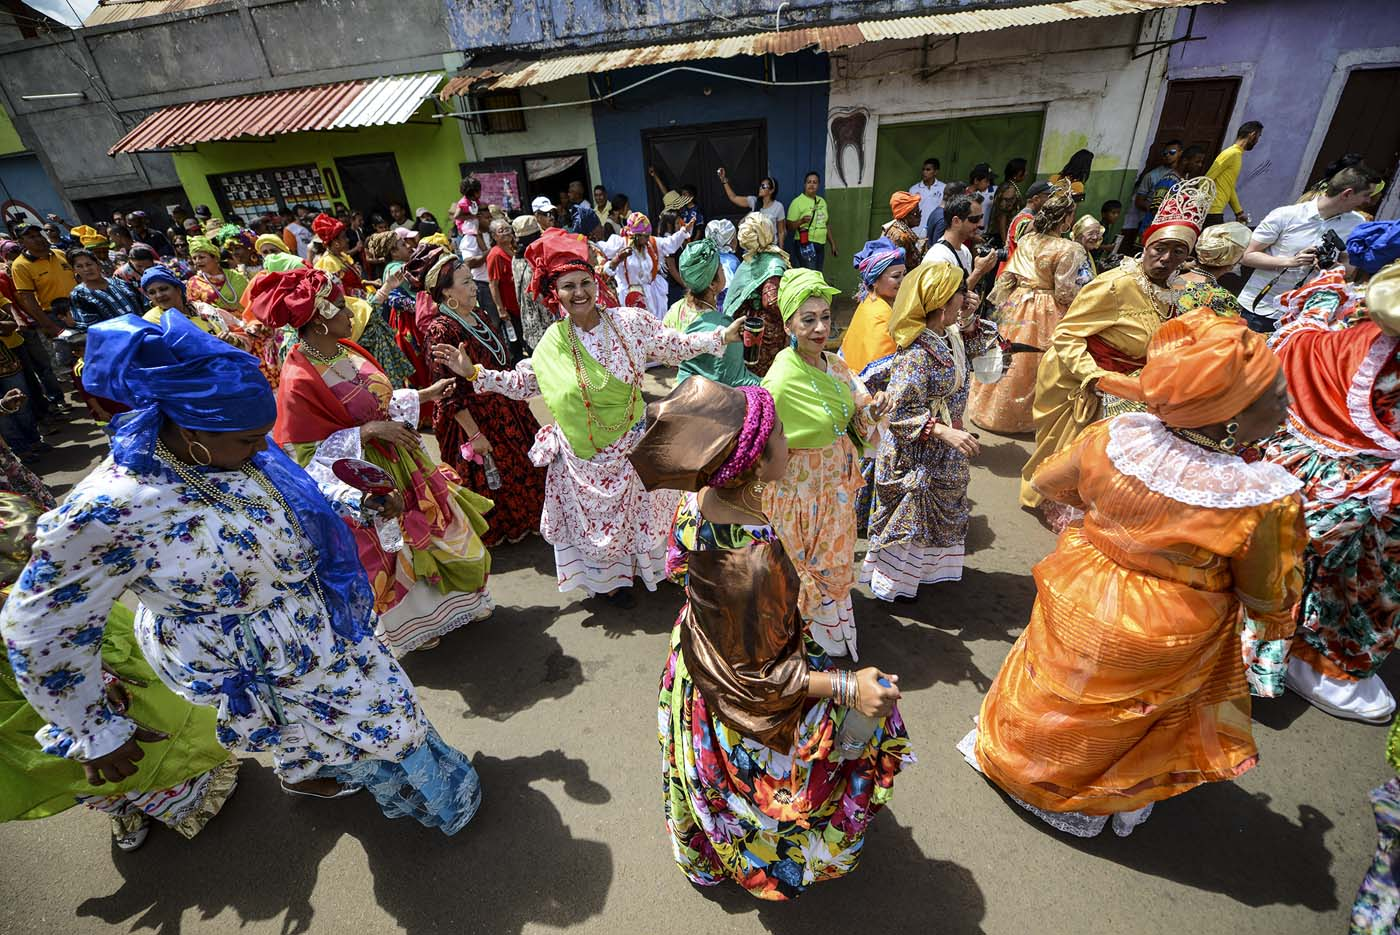 "Women dressed as ""madamas"" dance as they take part in a parade during the Carnival in El Callao, Bolivar state, Venezuela on February 26, 2017.  El Callao's carnival was recently named Unesco's Intangible Cultural Heritage of Humanity and is led by the madamas, the pillars of Callaoense identity representing Antillean matrons considered the communicators of values, who dance and wear colourful dresses. / AFP PHOTO / JUAN BARRETO"